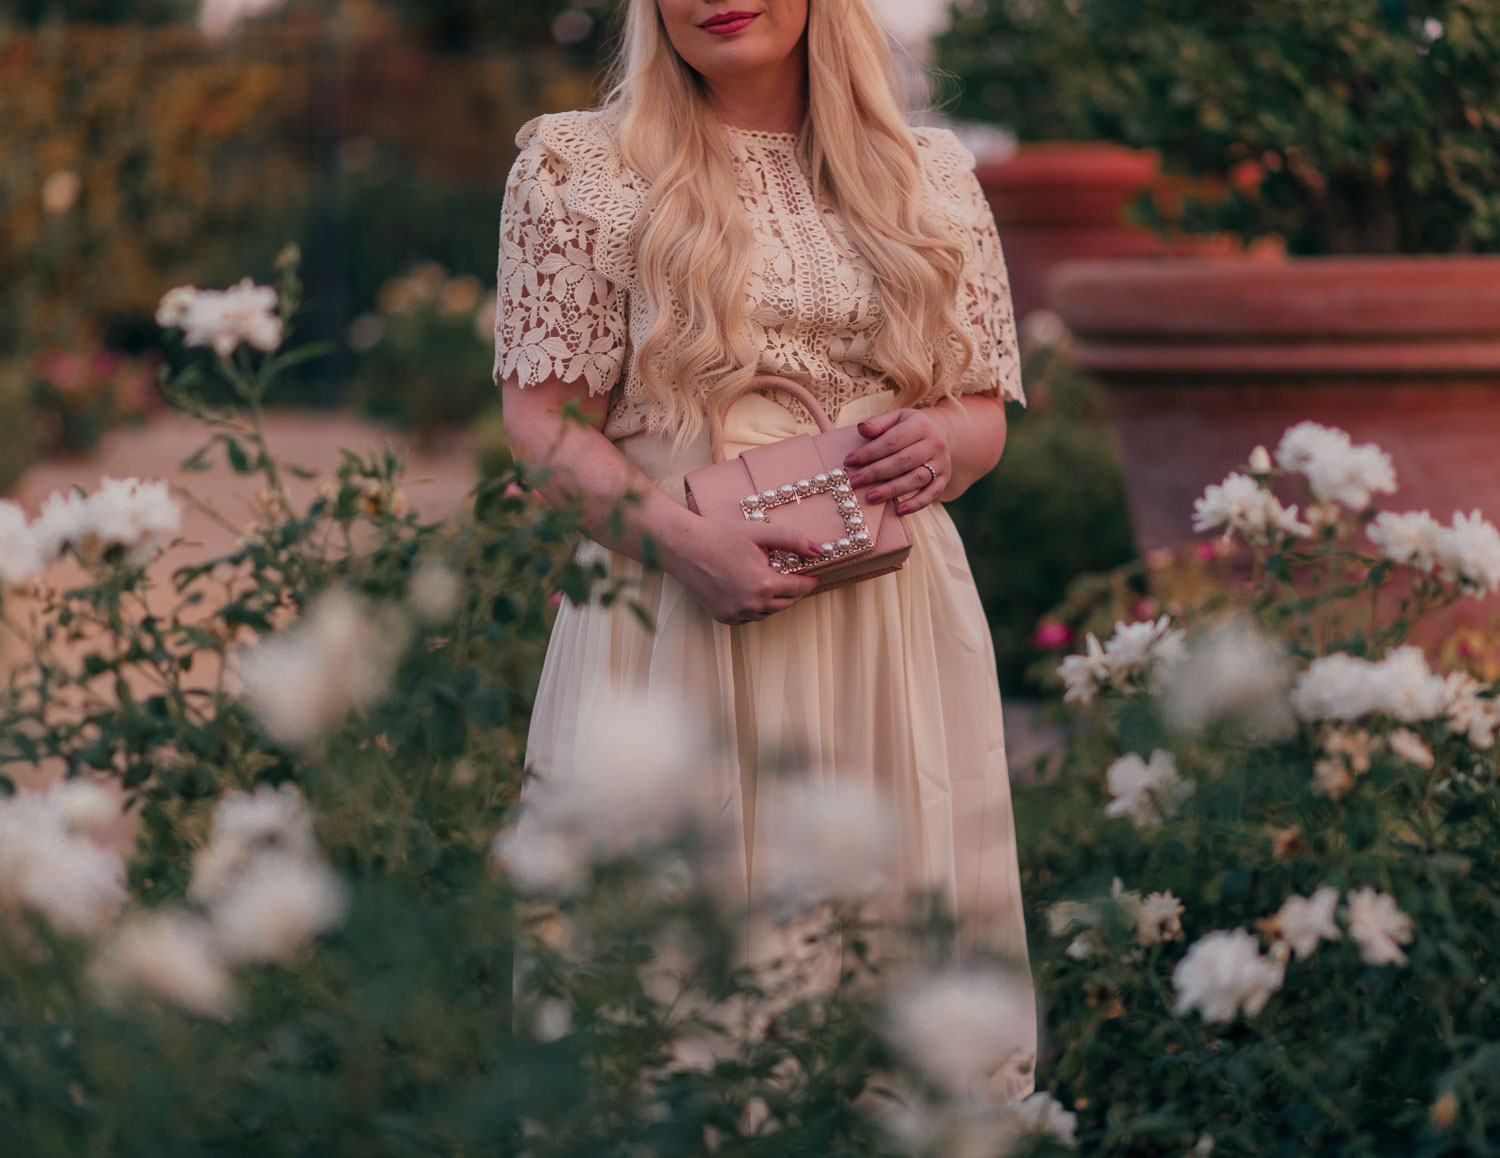 Feminine Fashion Blogger Elizabeth Hugen of Lizzie in Lace shares 5 Ways to Wear White After Labor Day with this gorgeous cream feminine outfit from Chicwish